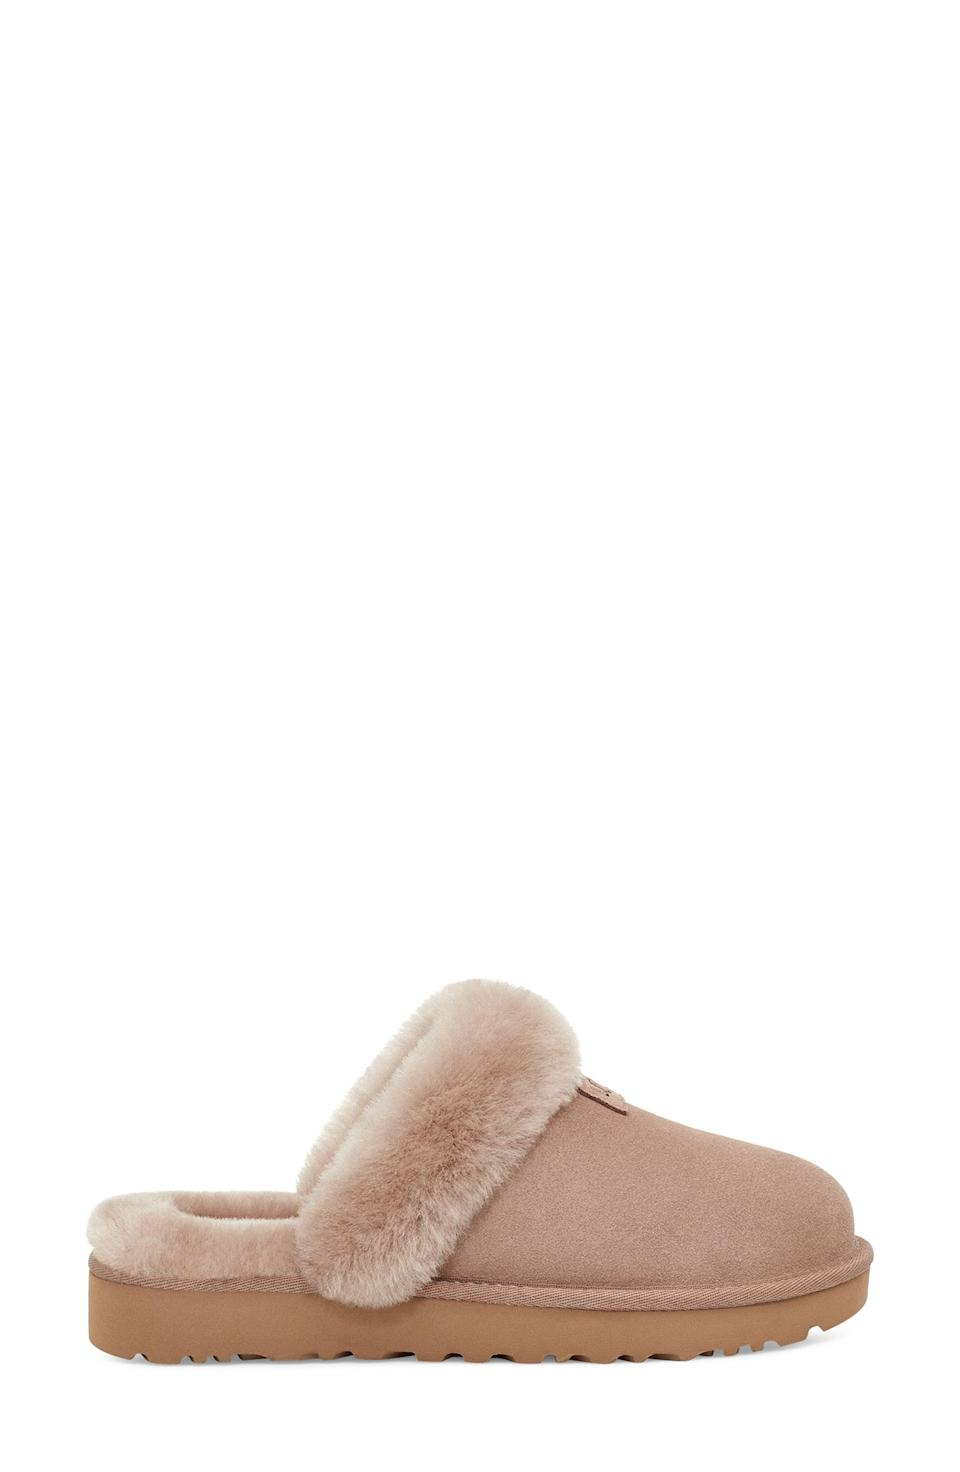 """<p>nordstrom.com</p><p><a href=""""https://go.redirectingat.com?id=74968X1596630&url=https%3A%2F%2Fwww.nordstrom.com%2Fs%2Fugg-genuine-shearling-slipper-women%2F5868136%3Forigin%3Dcategory-personalizedsort%26breadcrumb%3DHome%252FAnniversary%2BSale%252FWomen%252FShoes%26color%3D210&sref=https%3A%2F%2Fwww.harpersbazaar.com%2Ffashion%2Ftrends%2Fg36946278%2Fnordstrom-anniversary-sale-fashion%2F"""" rel=""""nofollow noopener"""" target=""""_blank"""" data-ylk=""""slk:SHOP AT NORDSTROM"""" class=""""link rapid-noclick-resp"""">SHOP AT NORDSTROM</a></p><p><strong>Sale: $70<br></strong></p><p><strong>After Sale: $100</strong></p><p>UGG slippers rarely can be found on sale, let alone for 30 percent off. If a pair is missing from your life or you're after a gift for someone you (really, really) love, now's as wise a time as there'll ever be to take the plunge. </p>"""